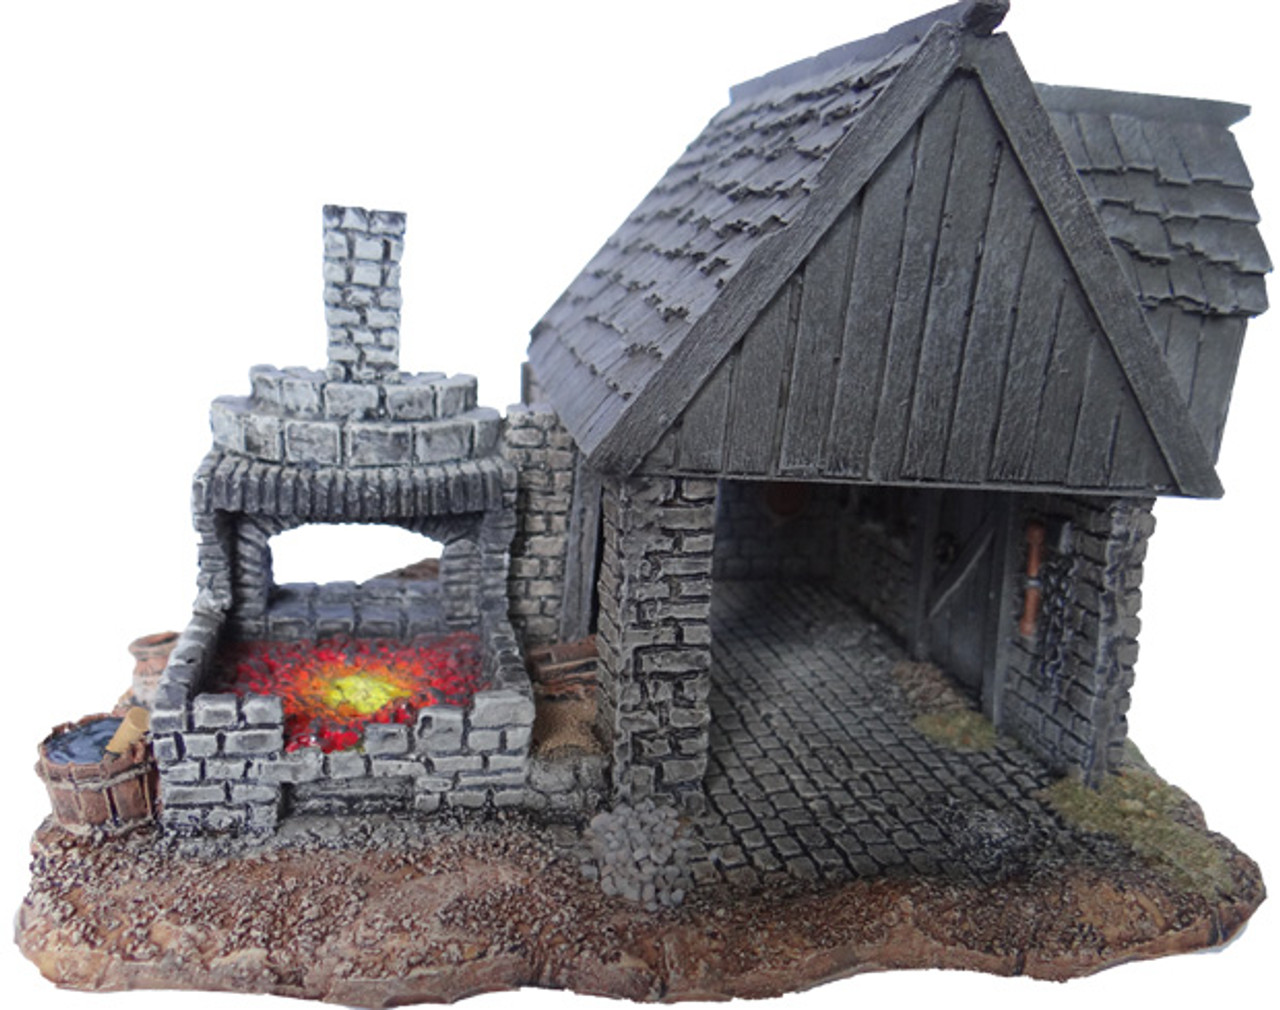 1090-Blacksmith Shop w/Forge